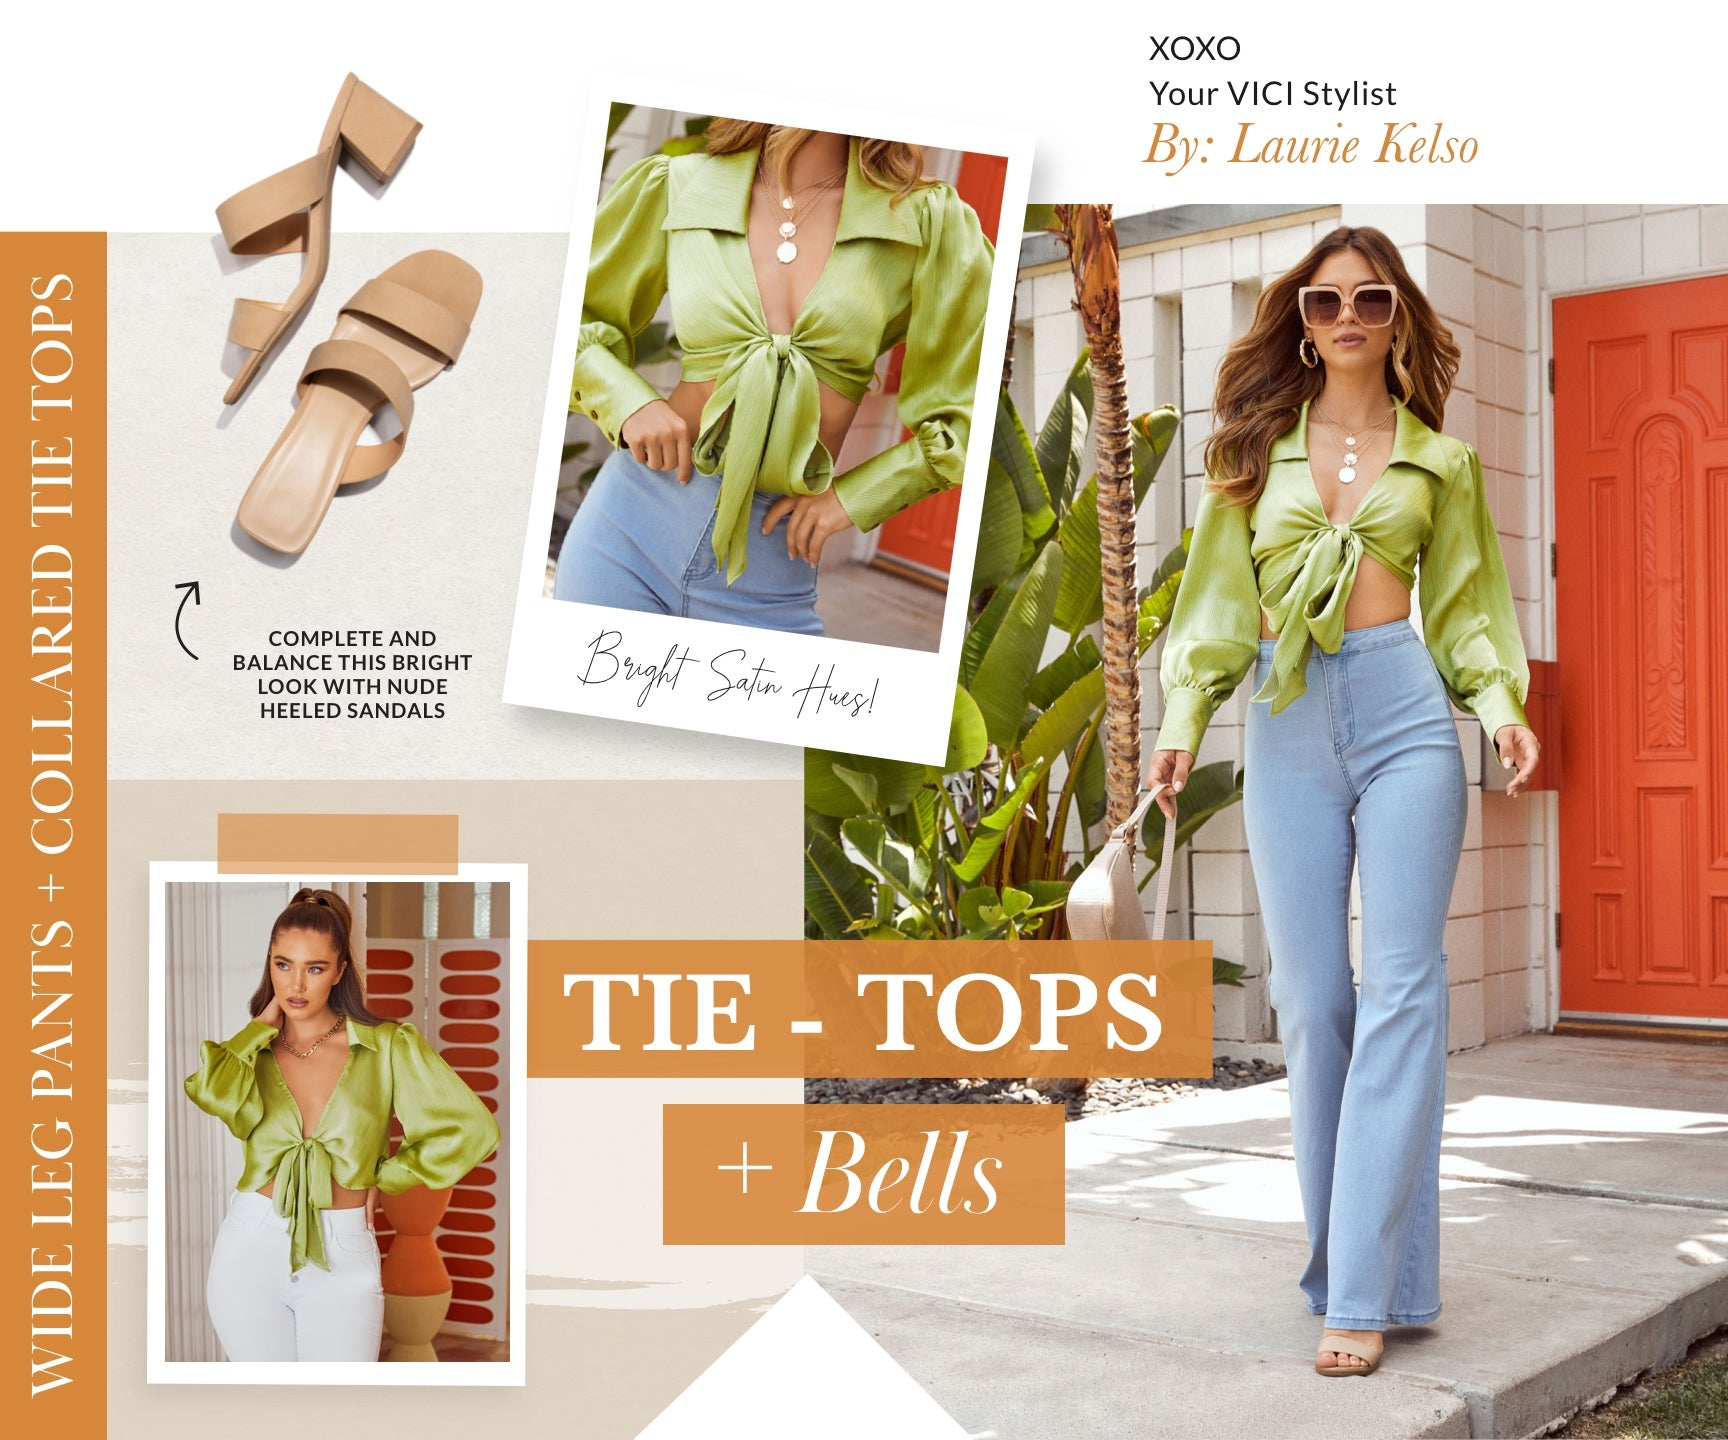 Wide leg pants are a trend that we are happily carrying over from Fall '20. Who wants to buy new jeans with each changing season? Freshen up your favorite light wash pair with a collared tie top. Bonus points for finding one in a bright satin hue that transitionals flawlessly from Summer to Fall. Shop Flared Denim